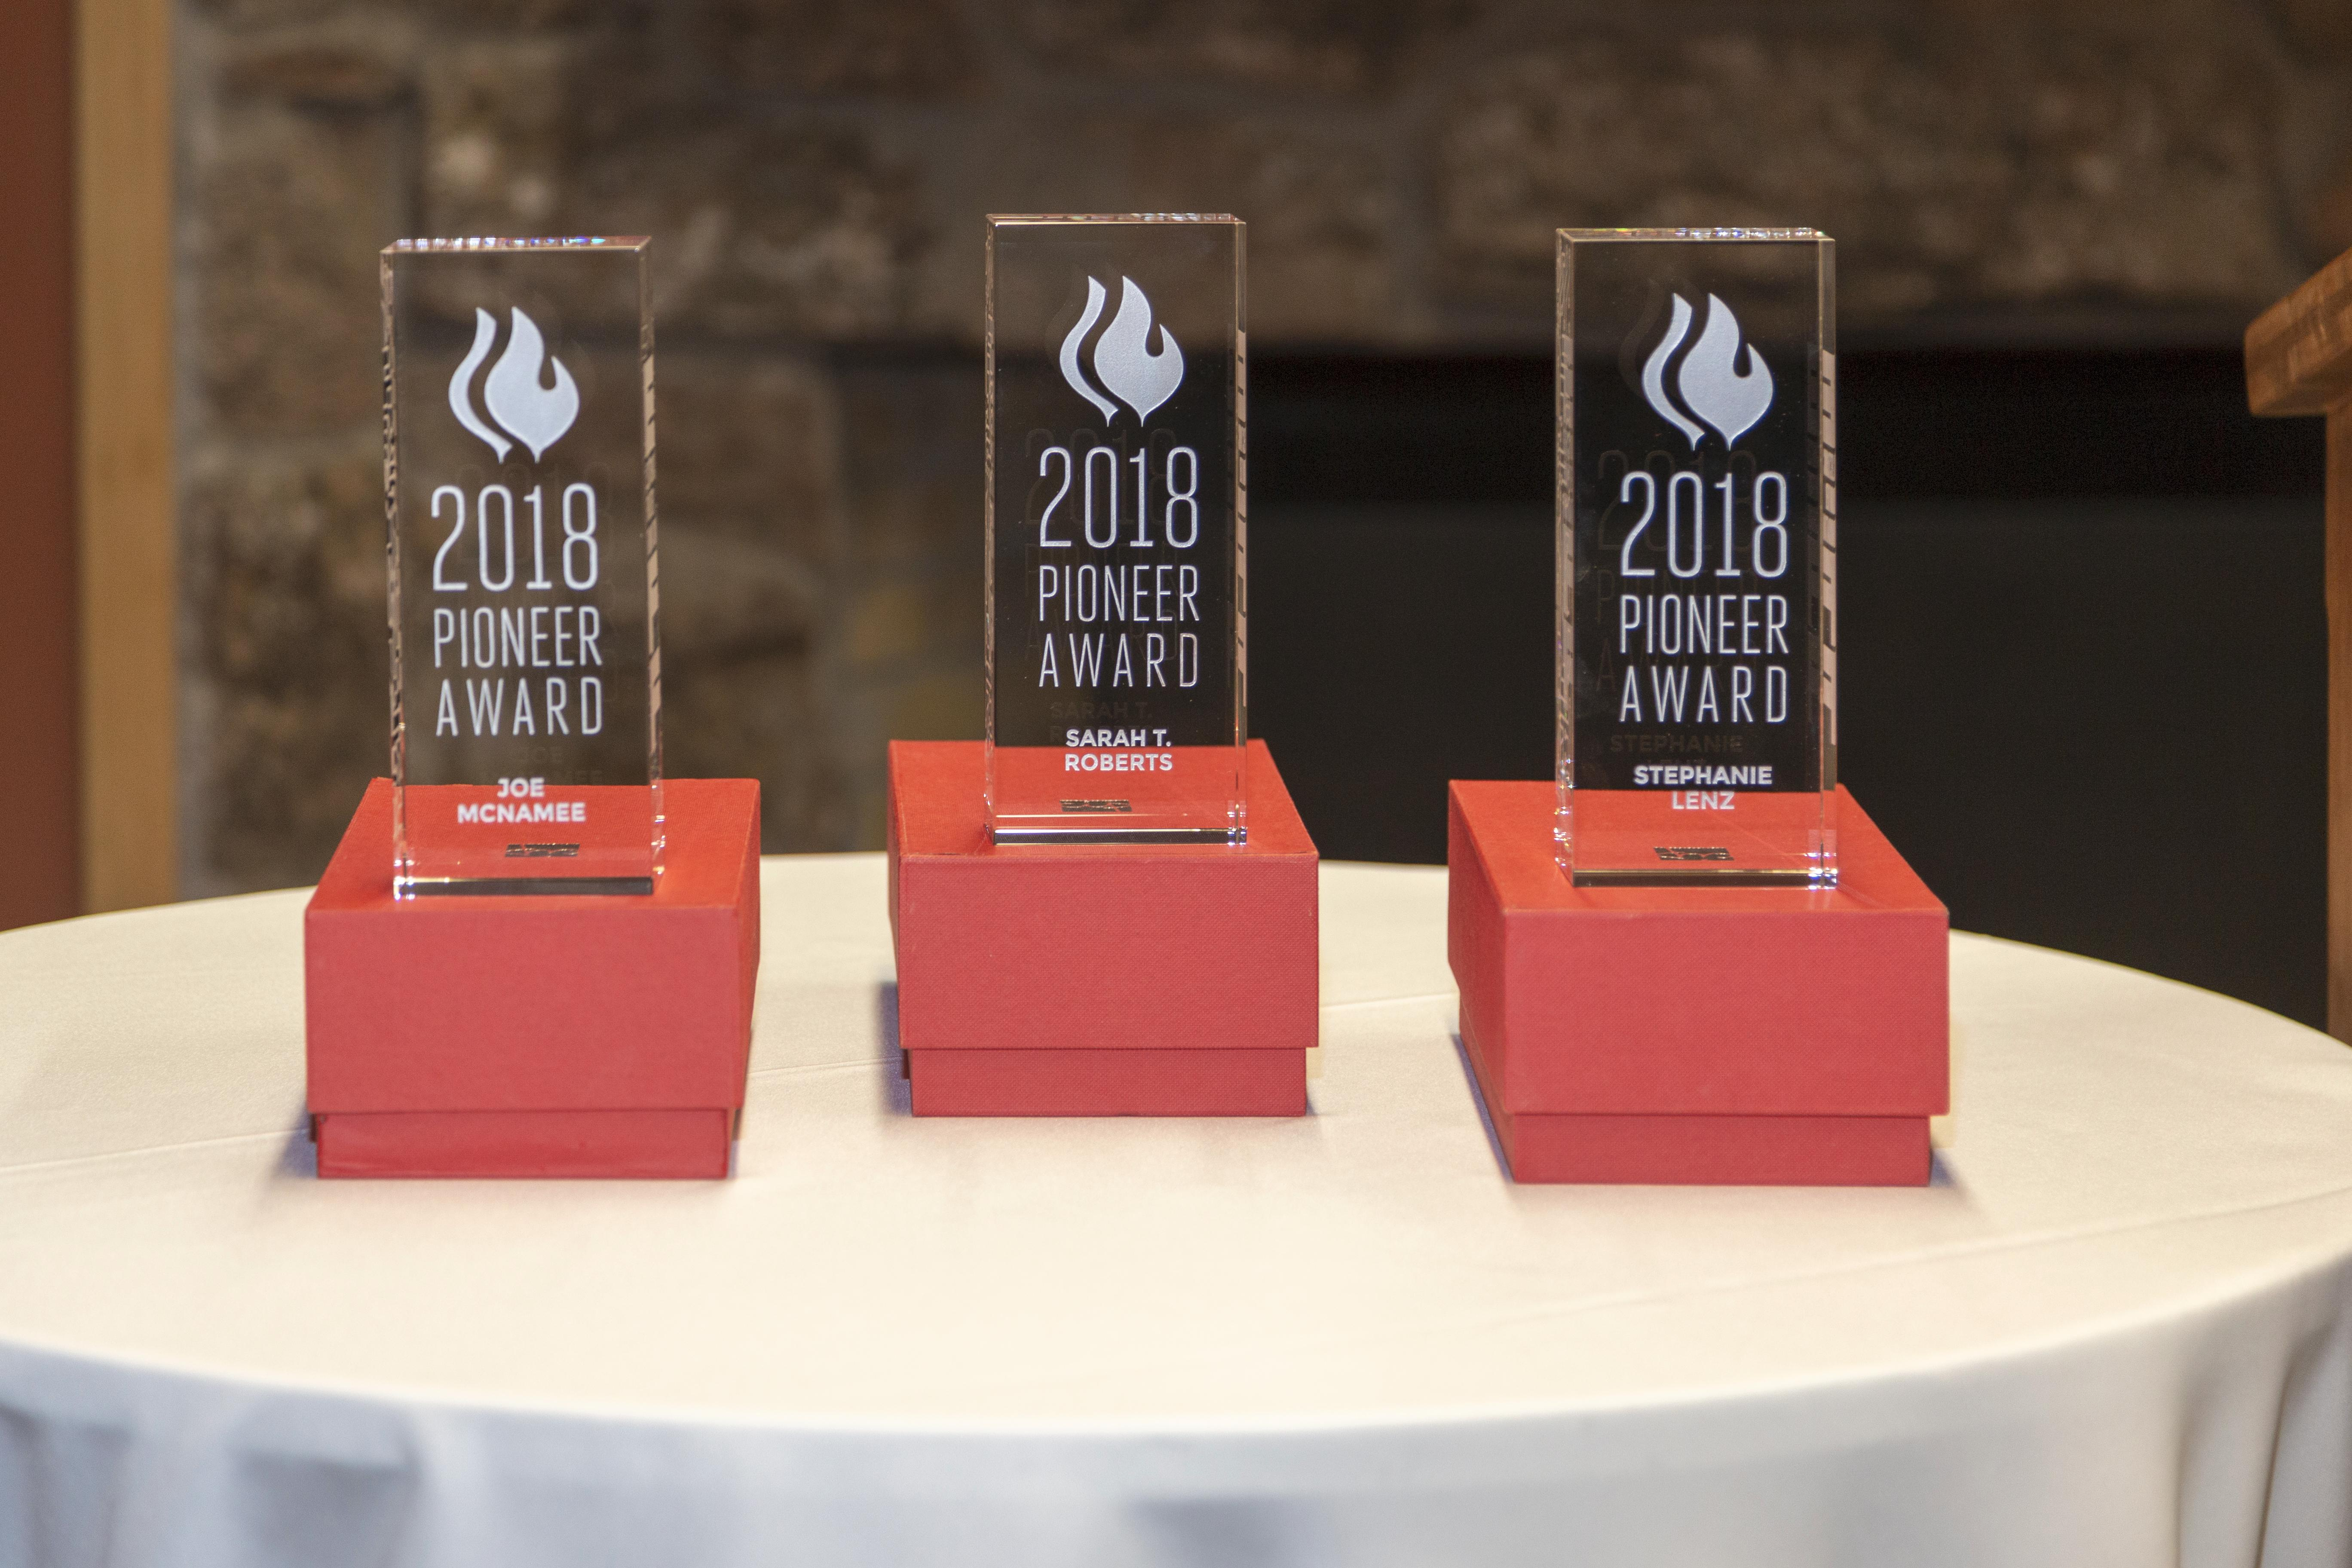 "Three 9"" by 3"" by 2"" rectangular awards in clear acrylic. Front engraved with ""2018 Pioneer Award"" and ""Joe McNamee"", ""Sarah T. Roberts"" and ""Stephanie Lenz"", respectively."